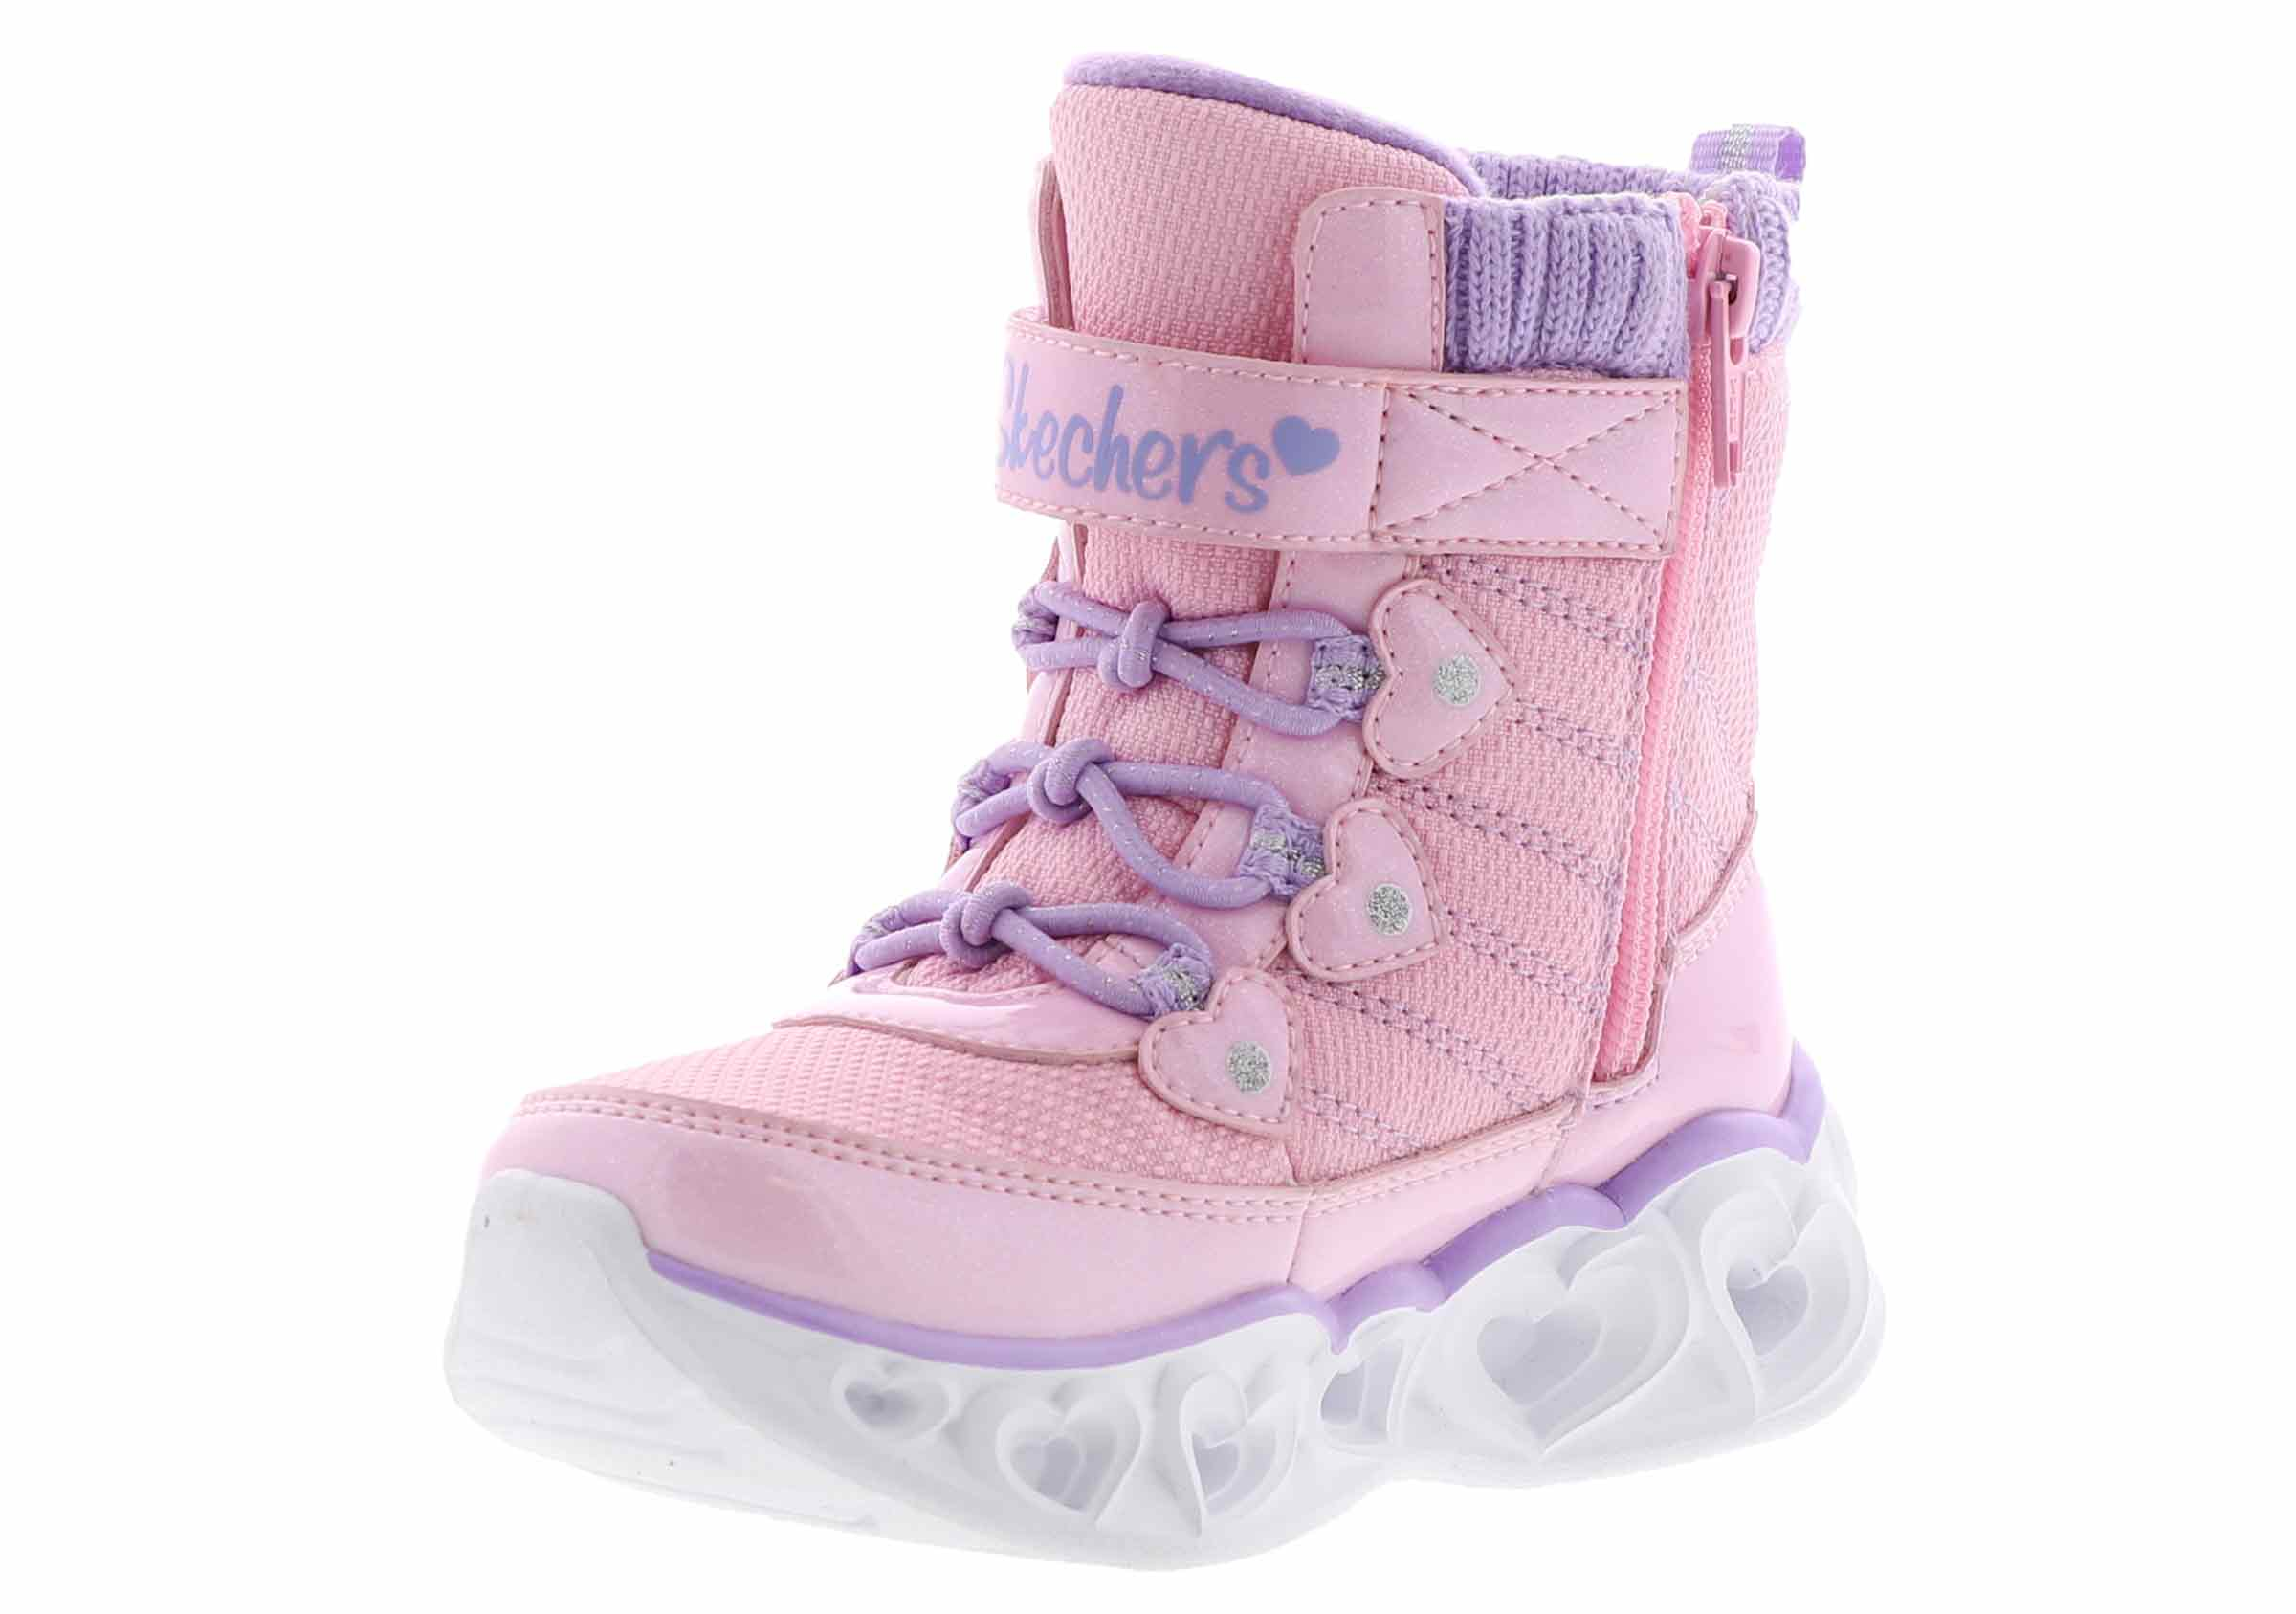 skechers boots mens pink Sale,up to 74